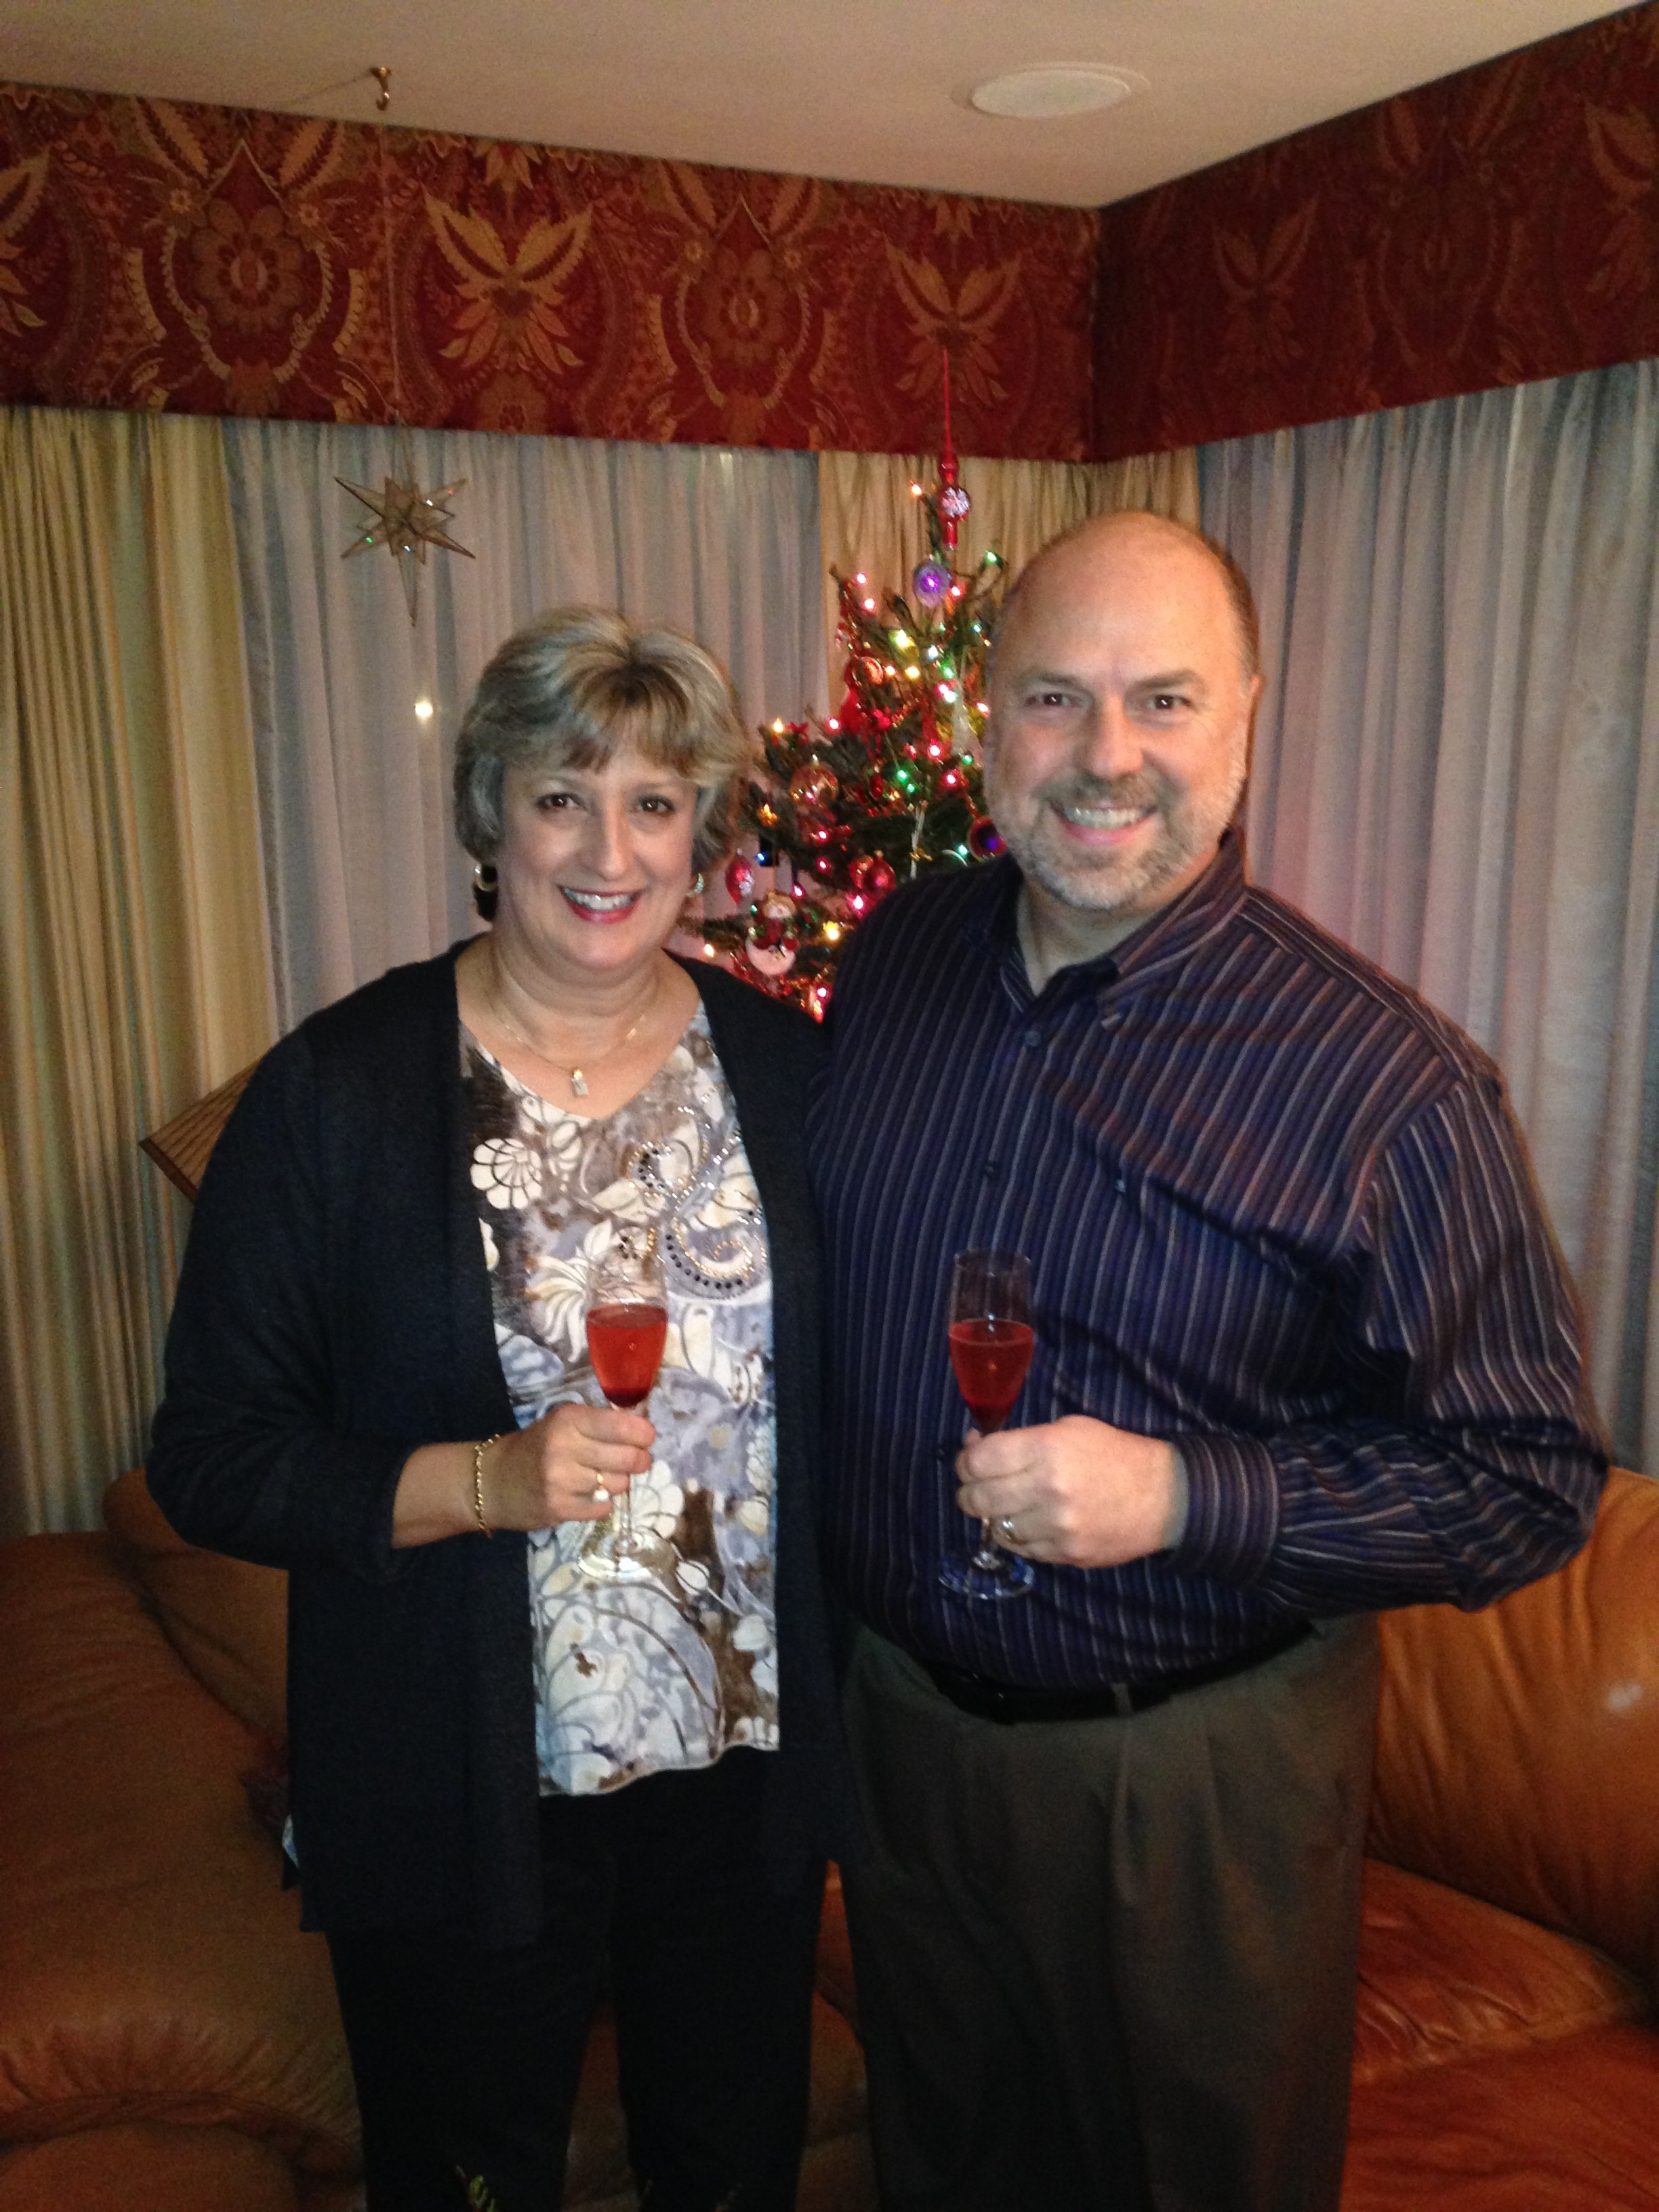 No food pics, but here's a picture of Nancy and I - Kurt K's Christmas Dinner Party - December 2013